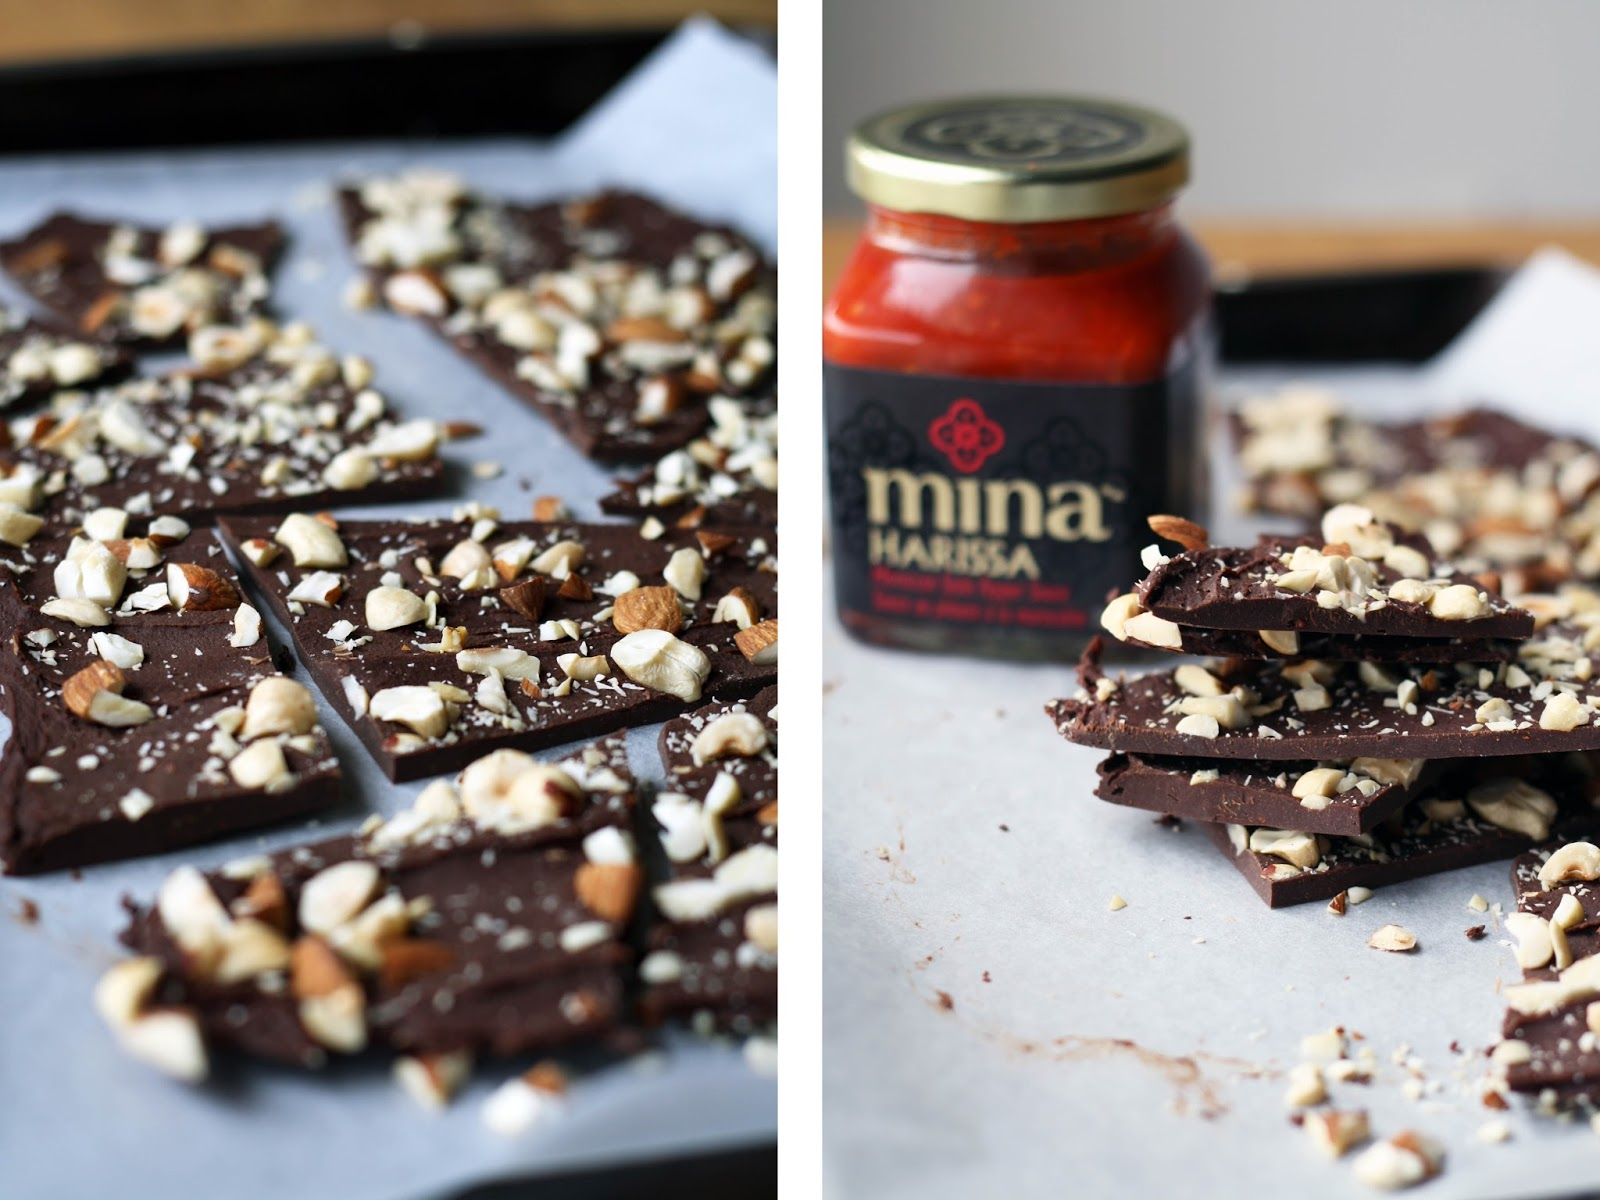 Harissa Chocolate Bark with Mixed Nuts | Sevengrams